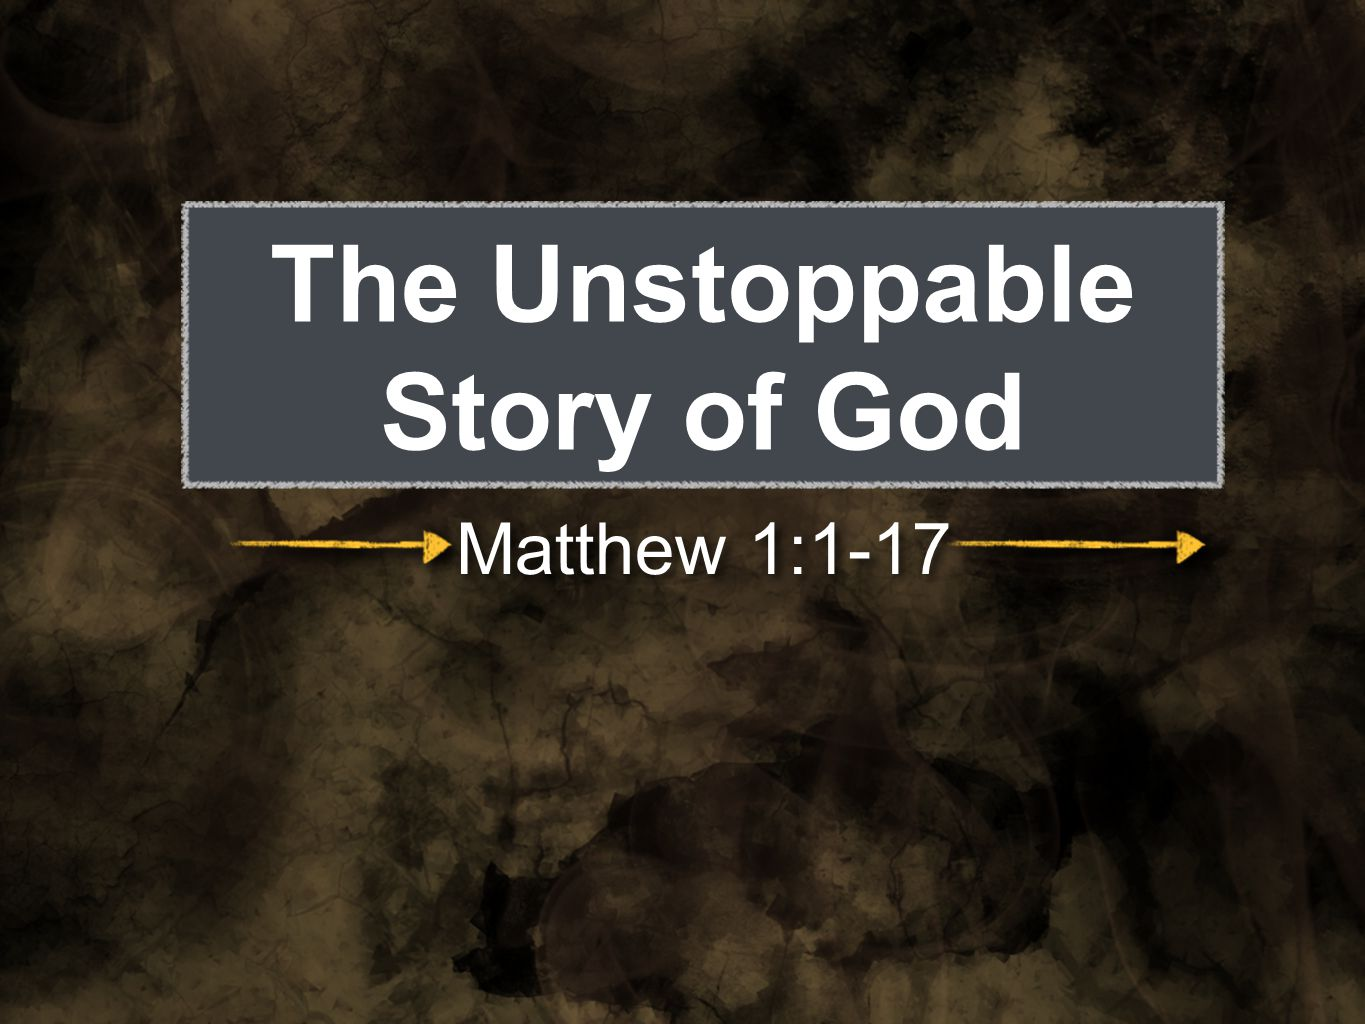 The Unstoppable Story of God Matthew 1:1-17